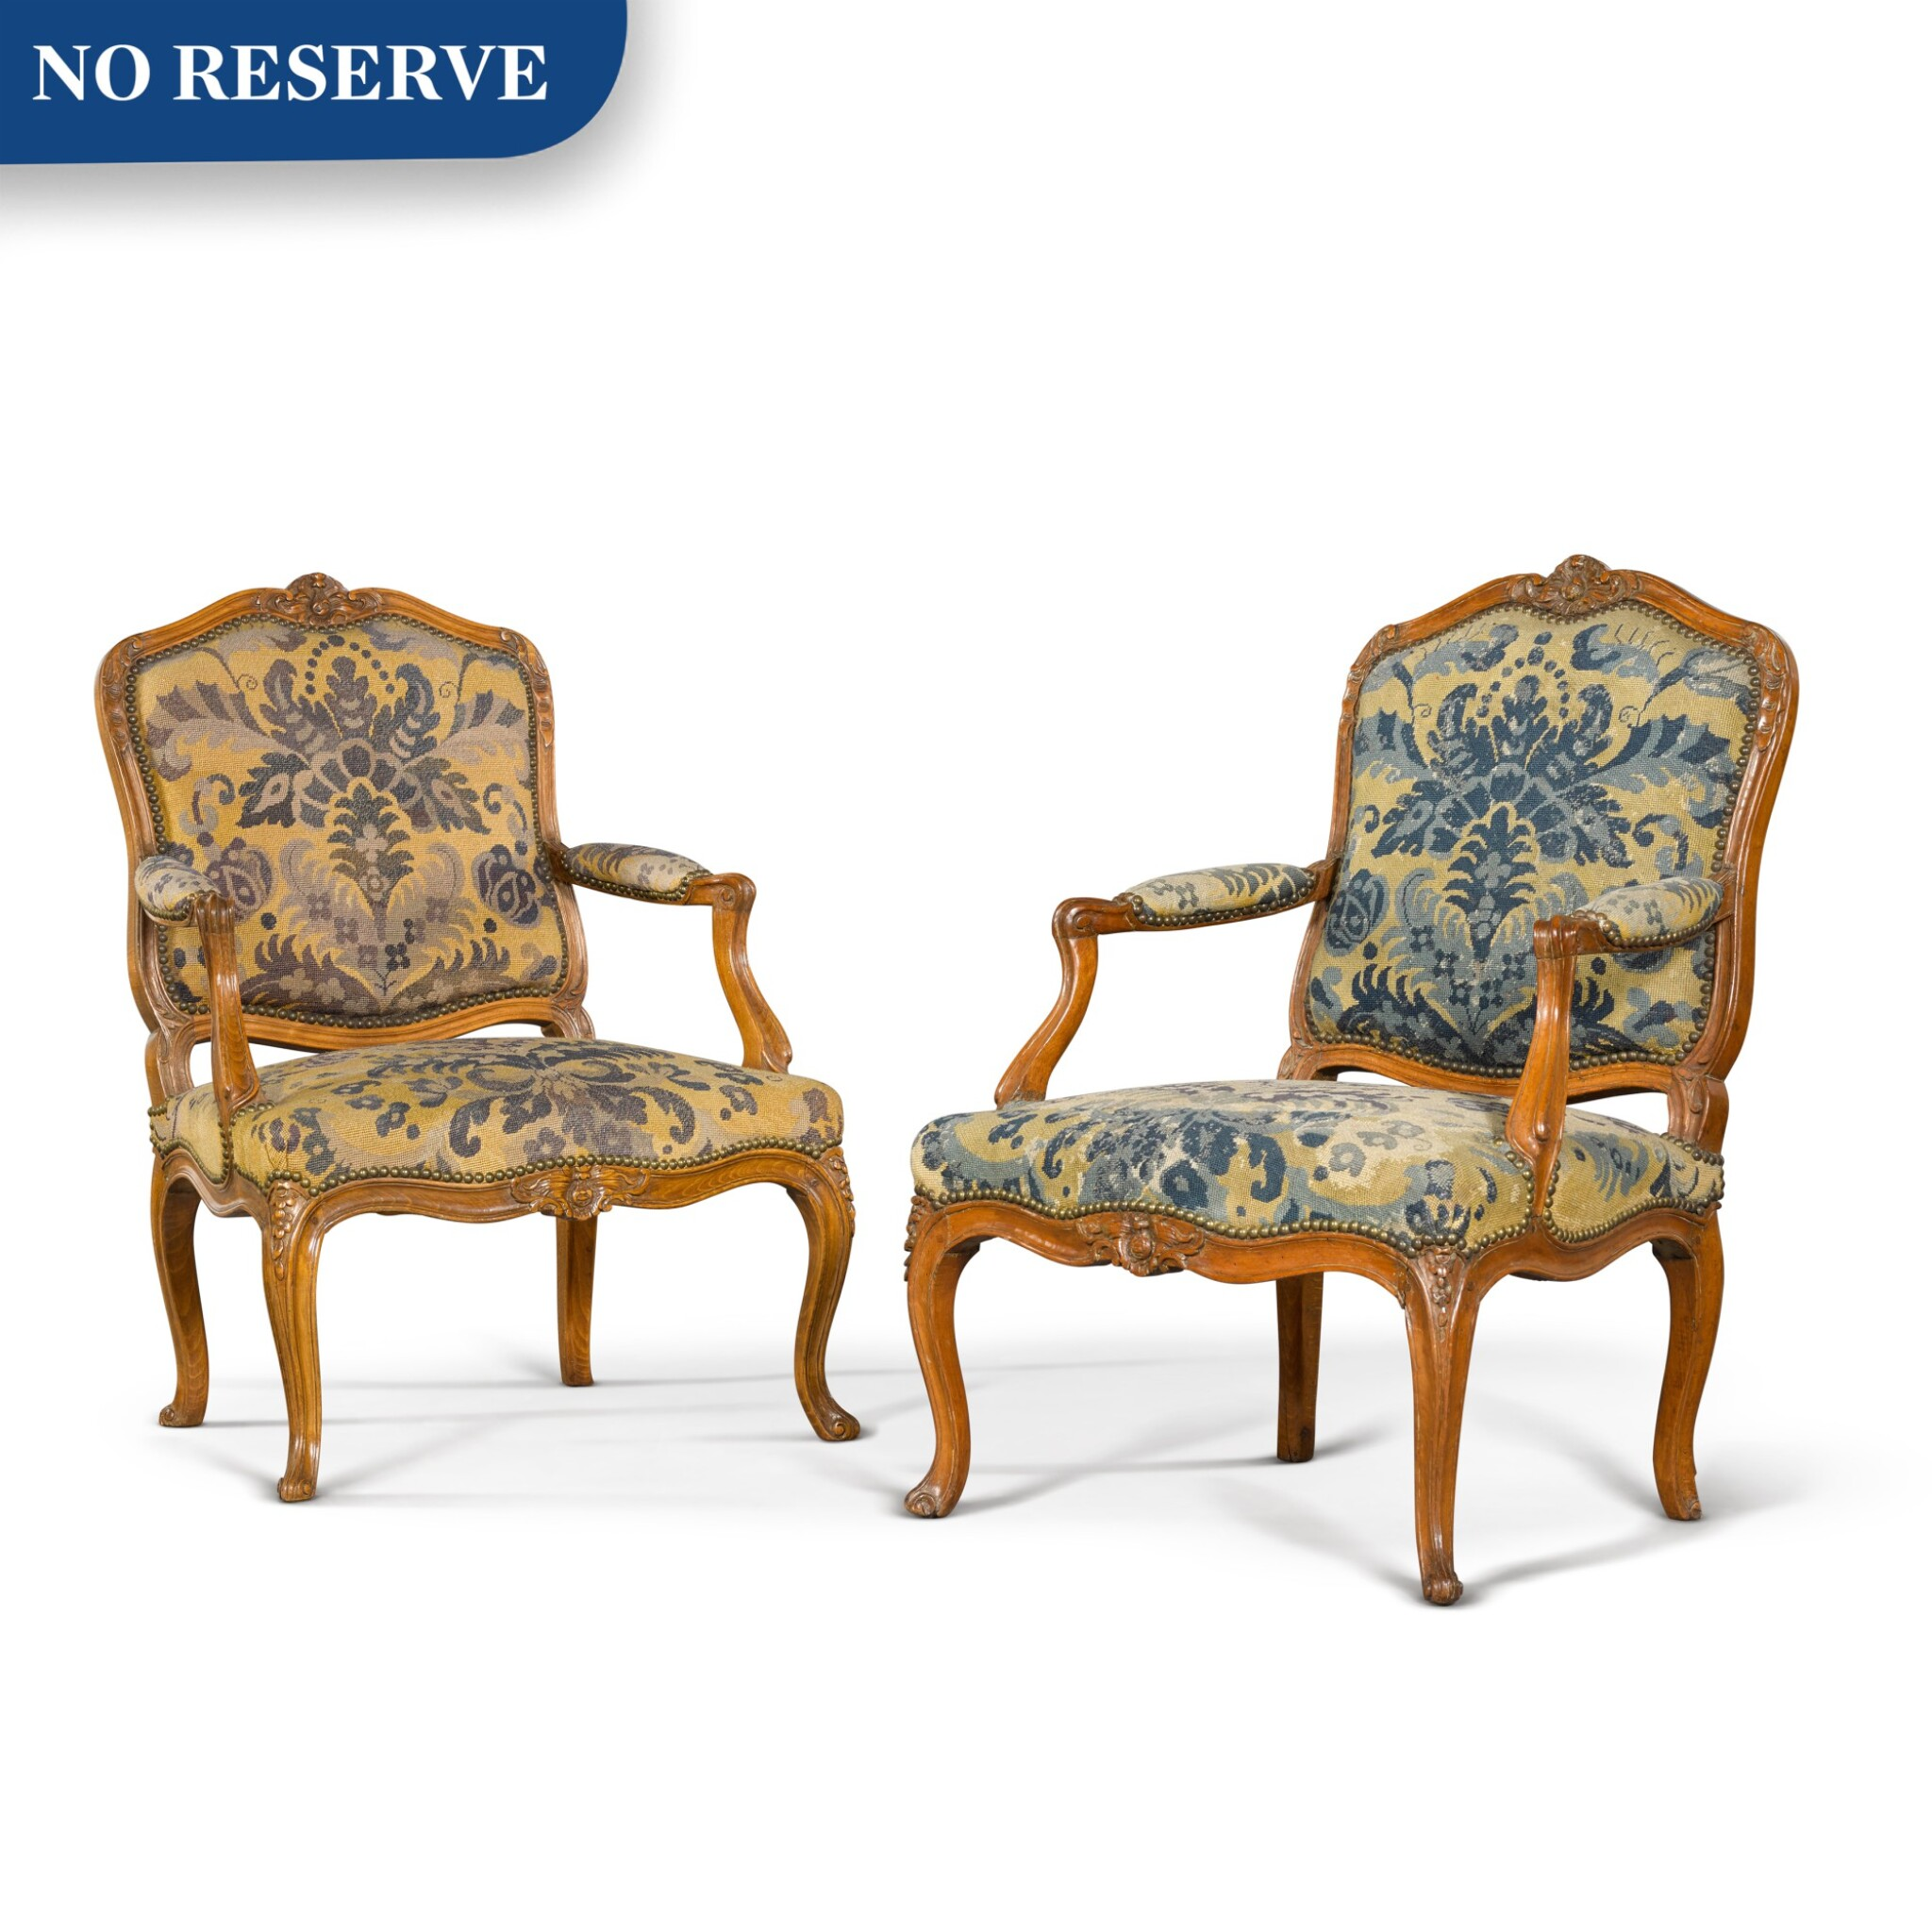 View full screen - View 1 of Lot 79. A pair of Louis XV carved beechwood fauteuils à la reine, one mid-18th century, the other a later copy.